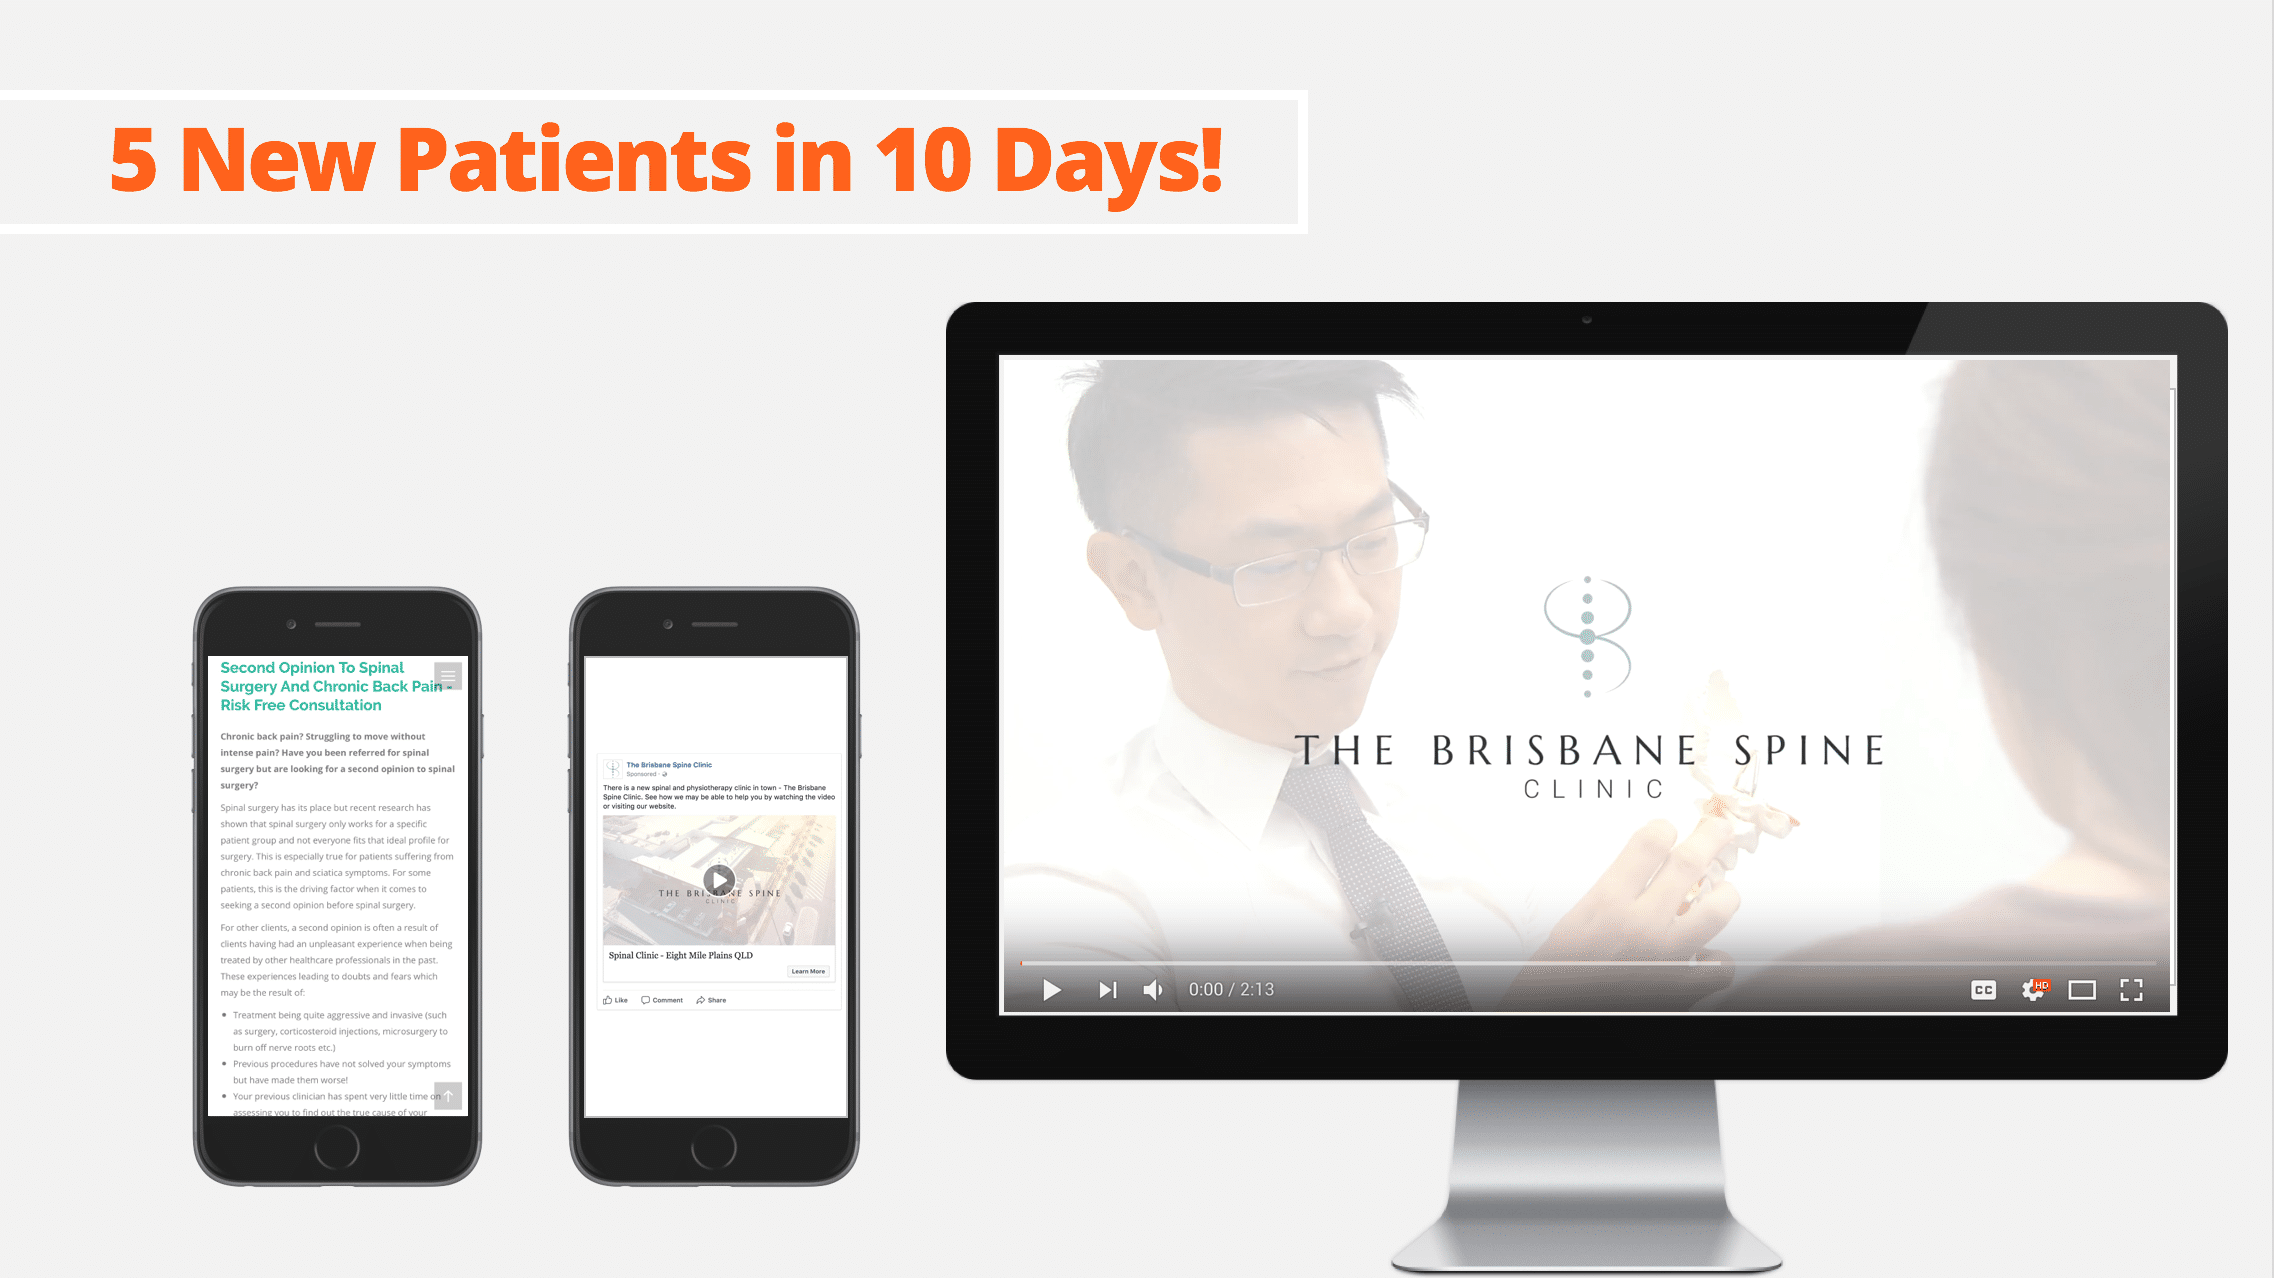 Brisbane Spine Clinic case study content